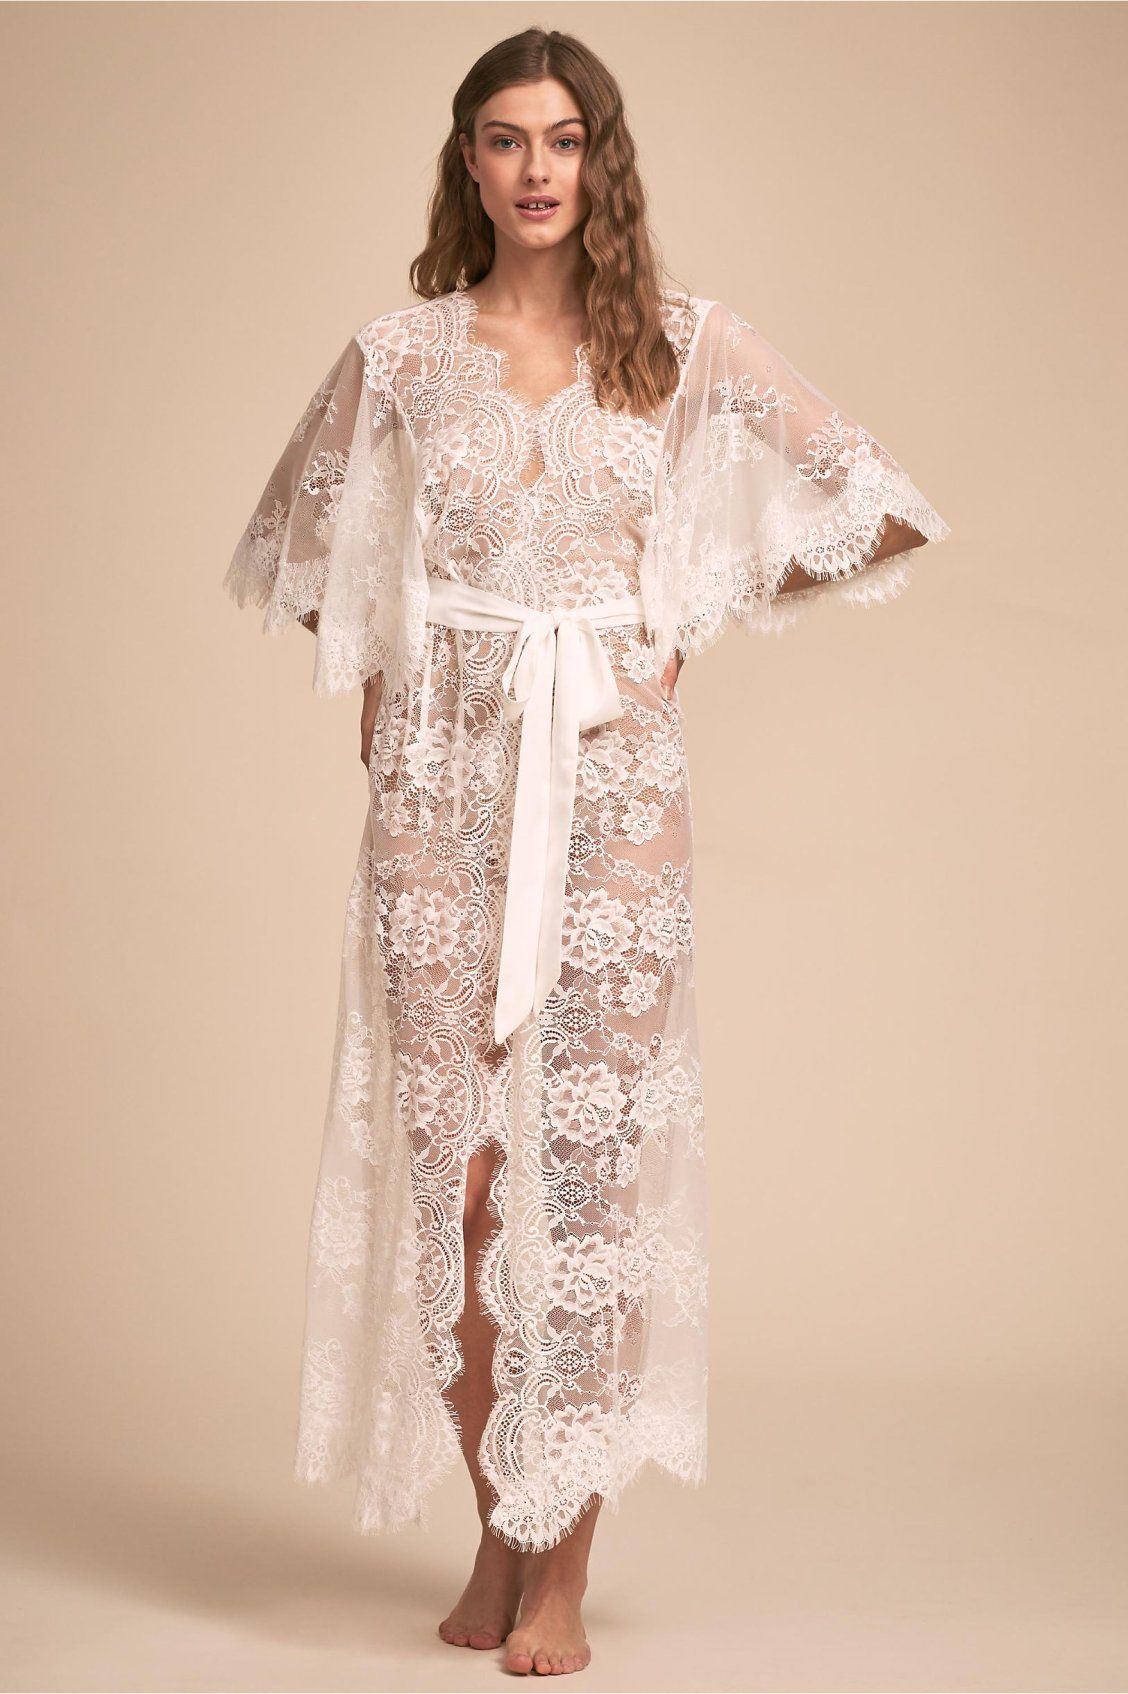 278341106d9 Kassiah Lace Robe from BHLDN